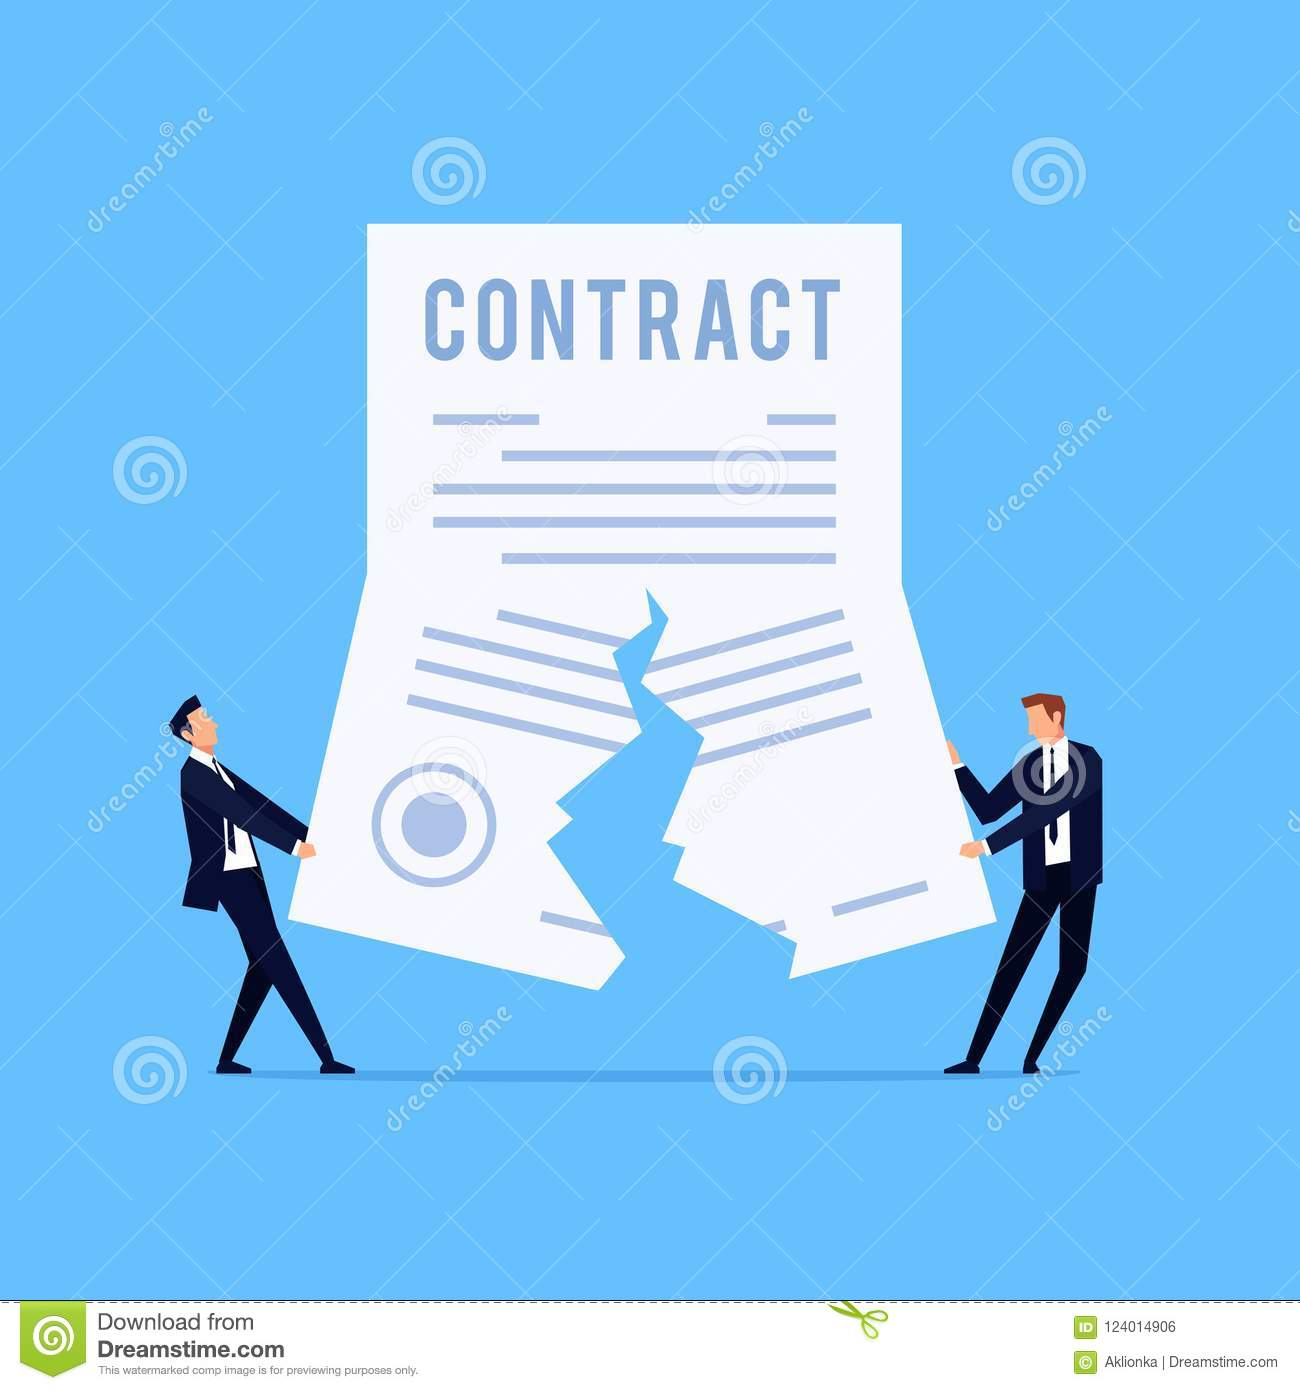 Cancellation of a contract.